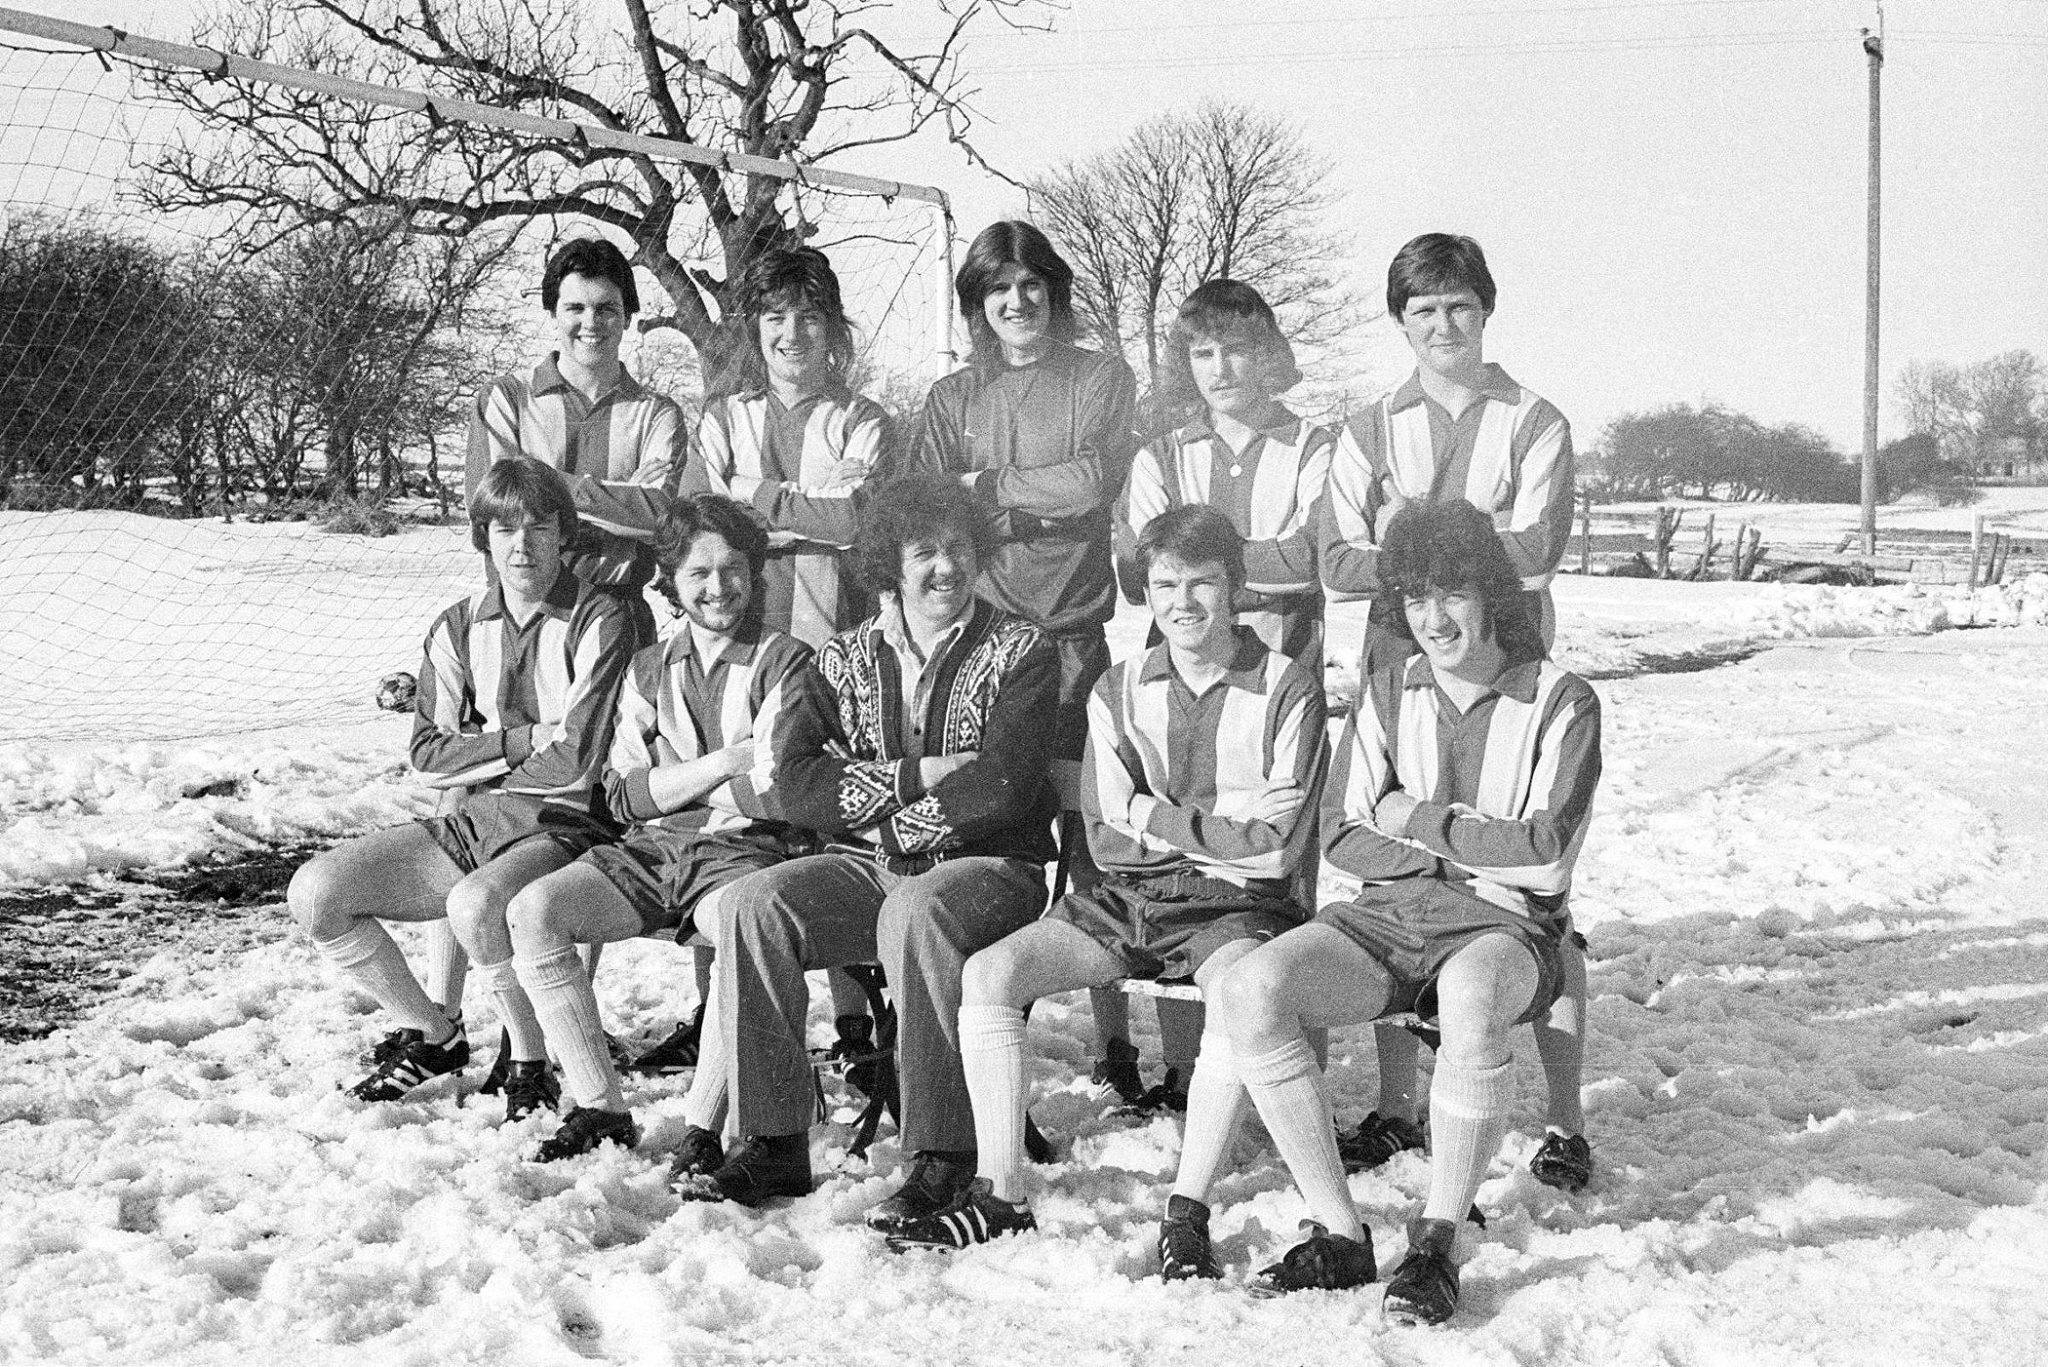 Snow didn't stop play for Matfen Rovers on this day back in 1979 - but winter postponements are a general source of frustration for teams.